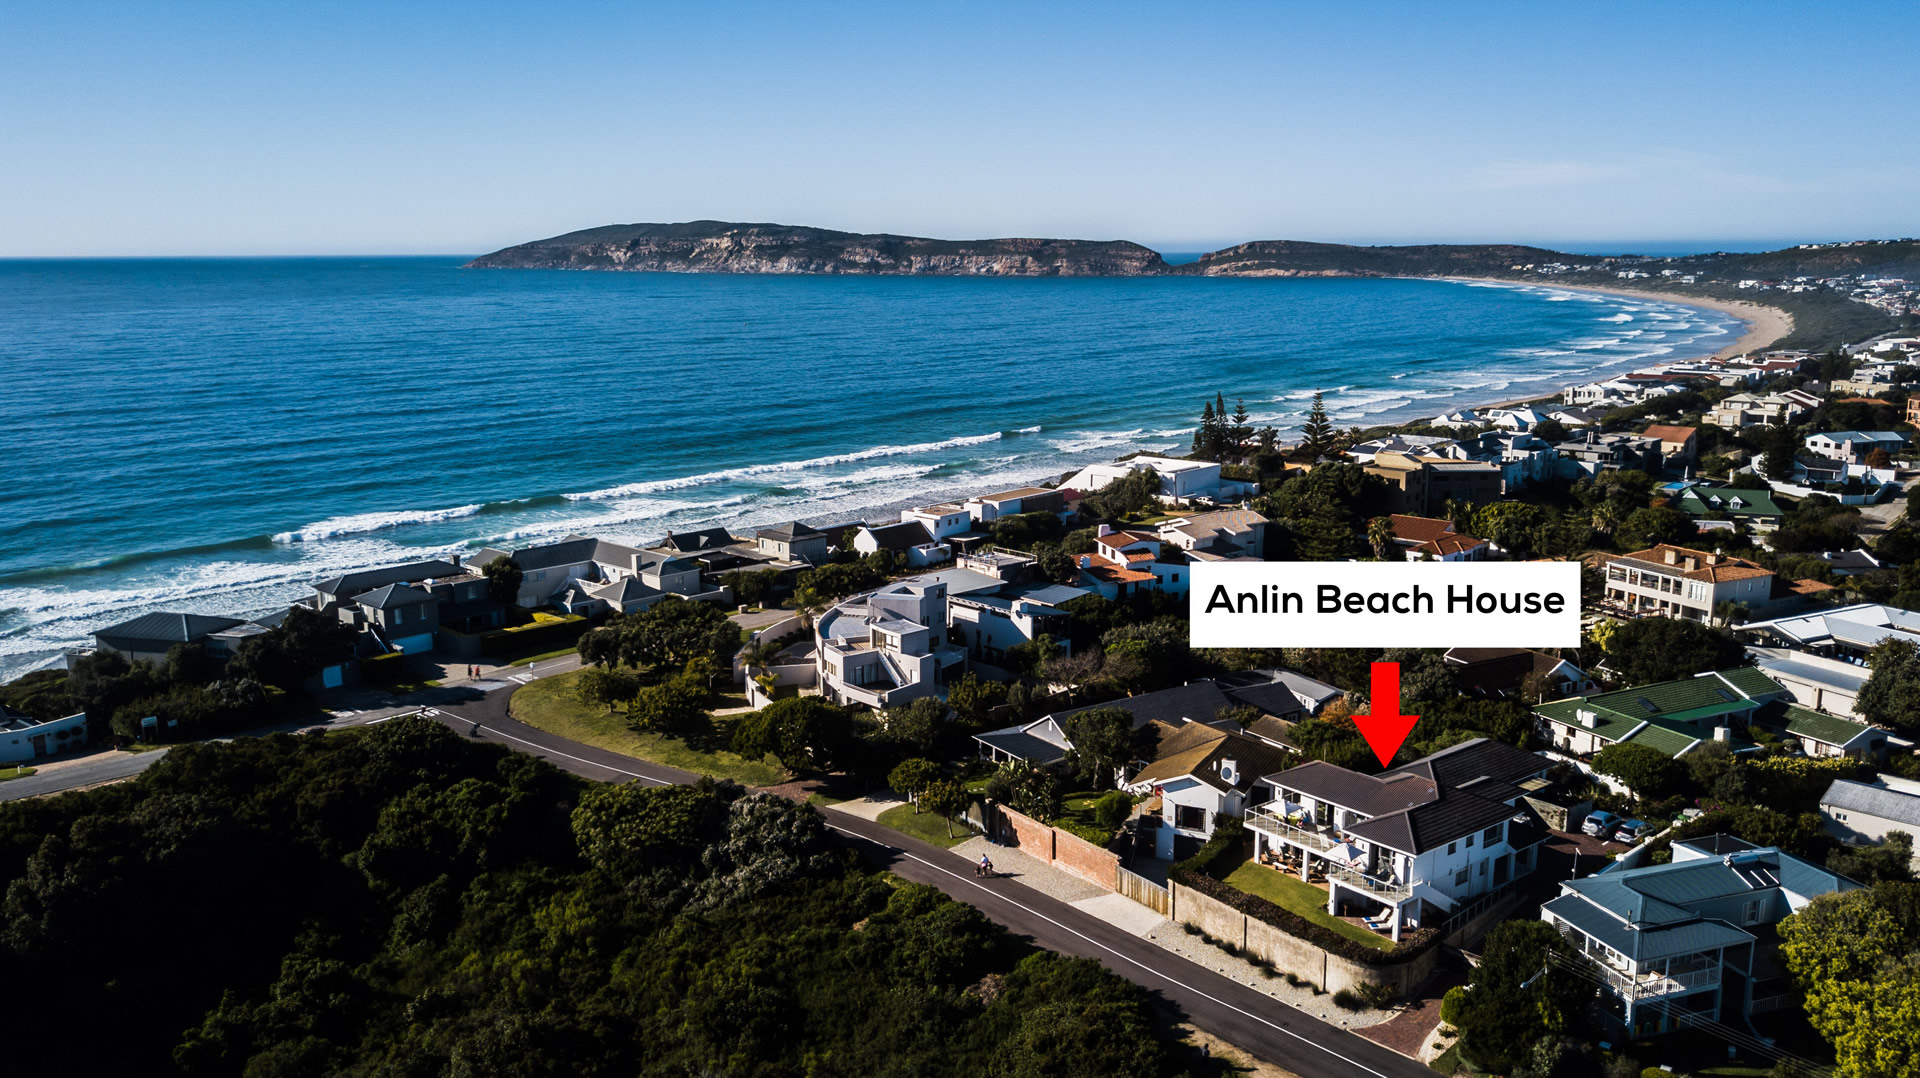 Anlin Beach House in Plett - Accommodation in Plettenberg Bay